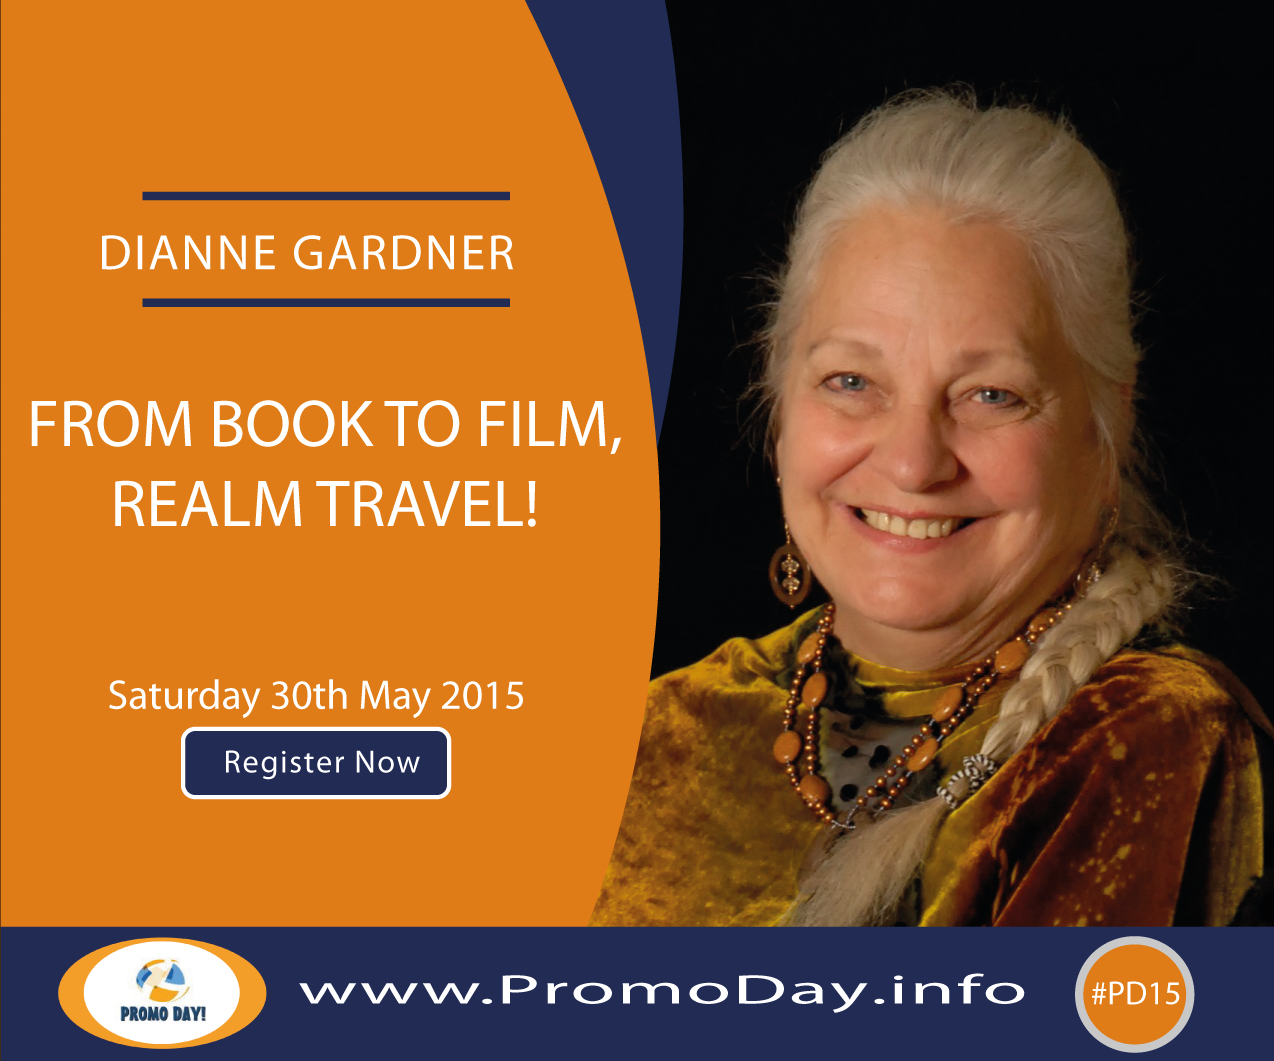 #PD15 Webinar: From Book to Film, Realm Travel! with Dianne Gardner, www.PromoDay.info #Free #Event